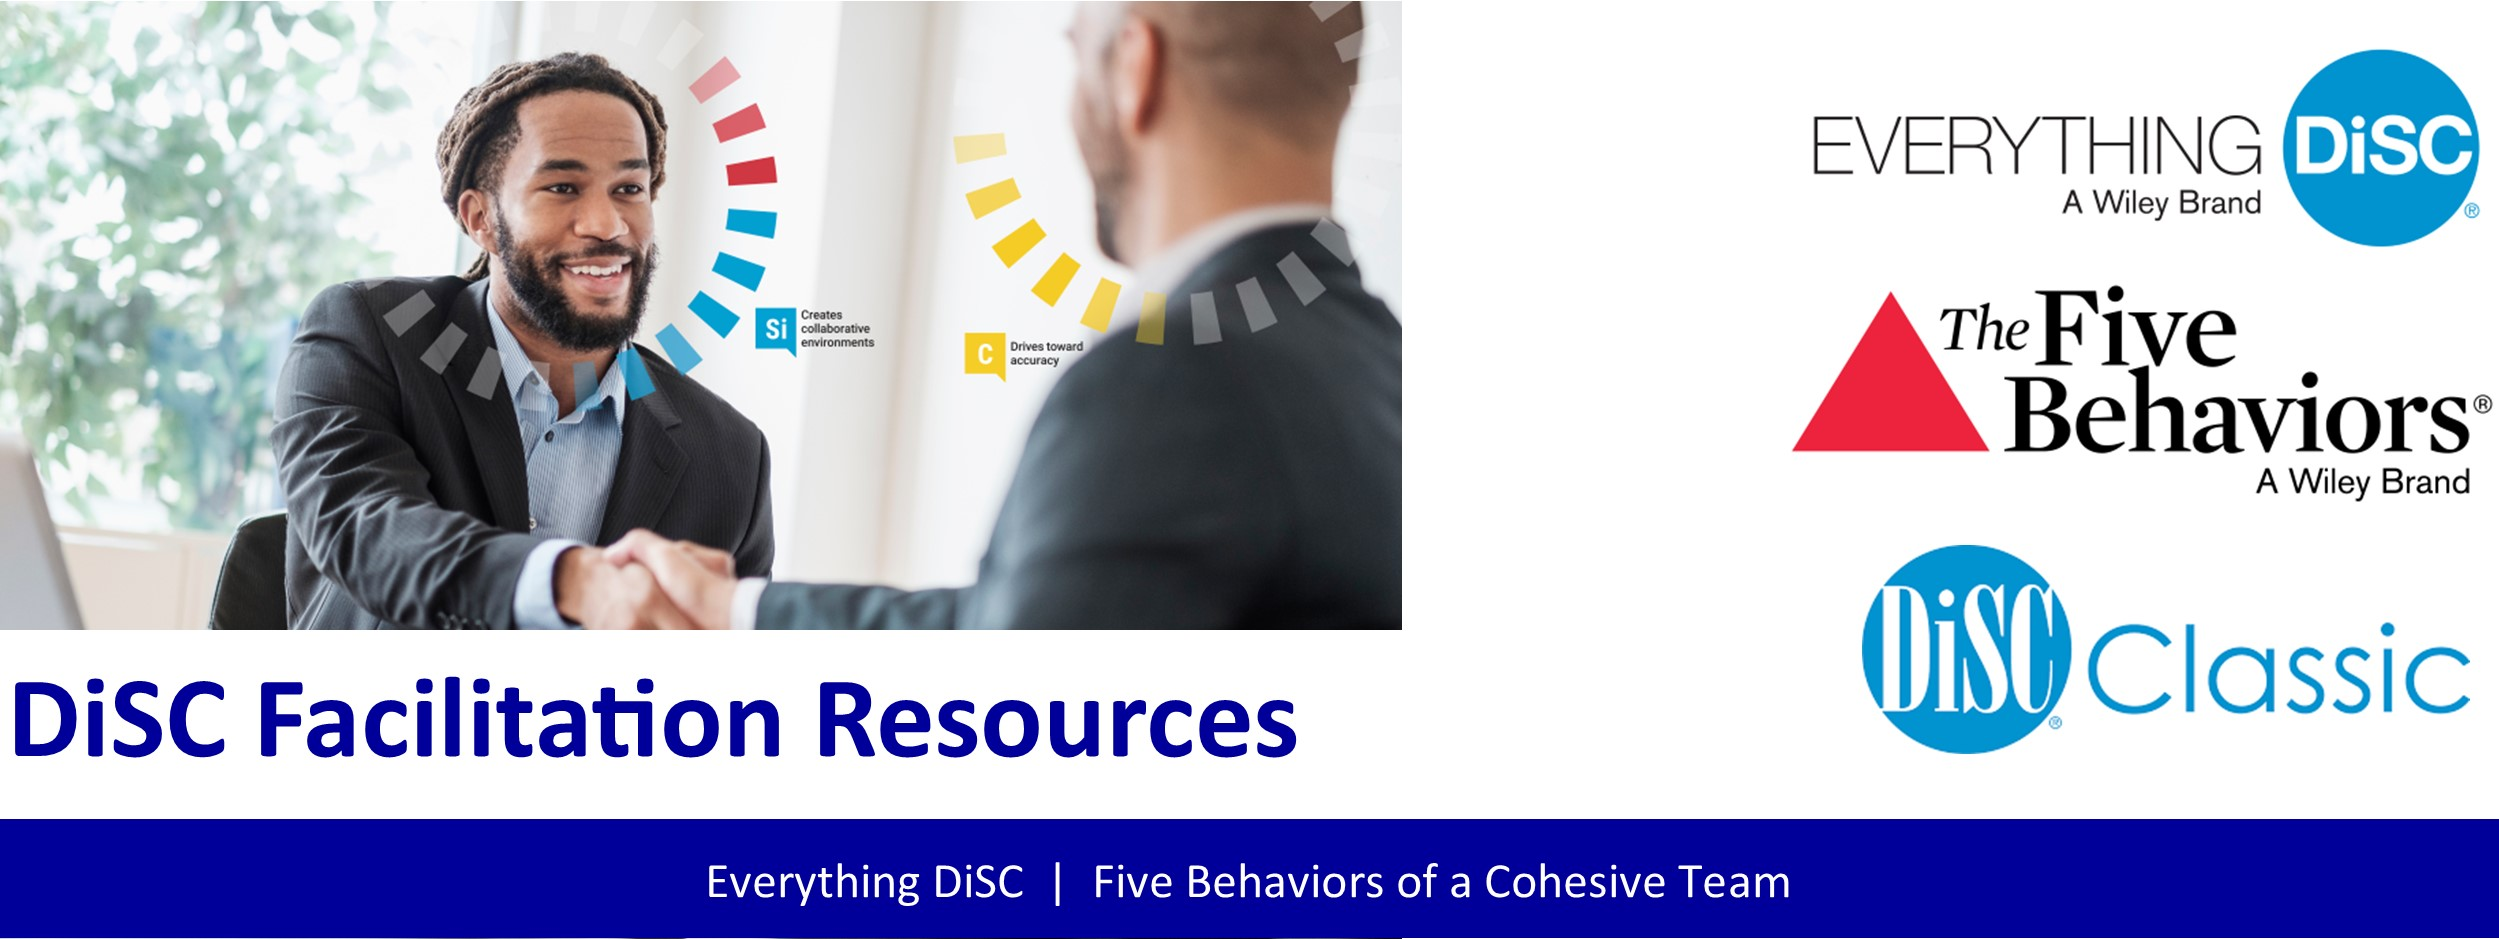 Everything DiSC Facilitation Resources